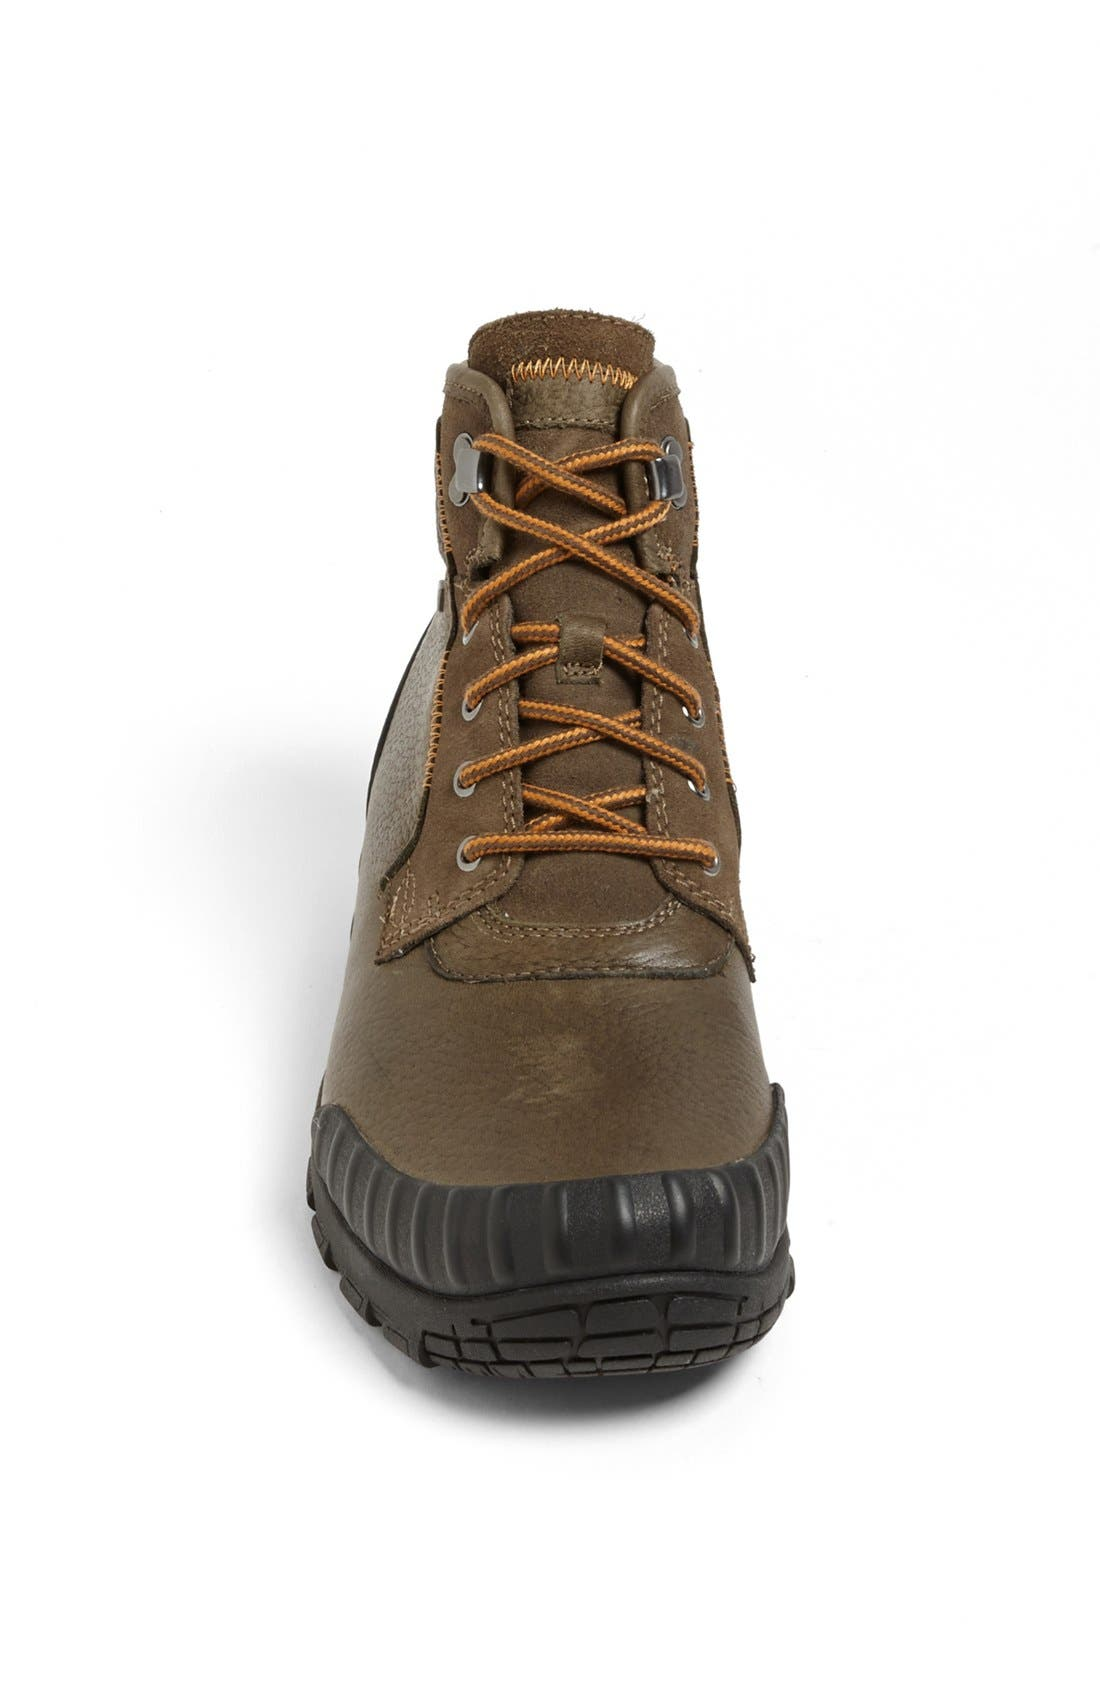 'Himavat' Waterproof Chukka Boot,                             Alternate thumbnail 3, color,                             200